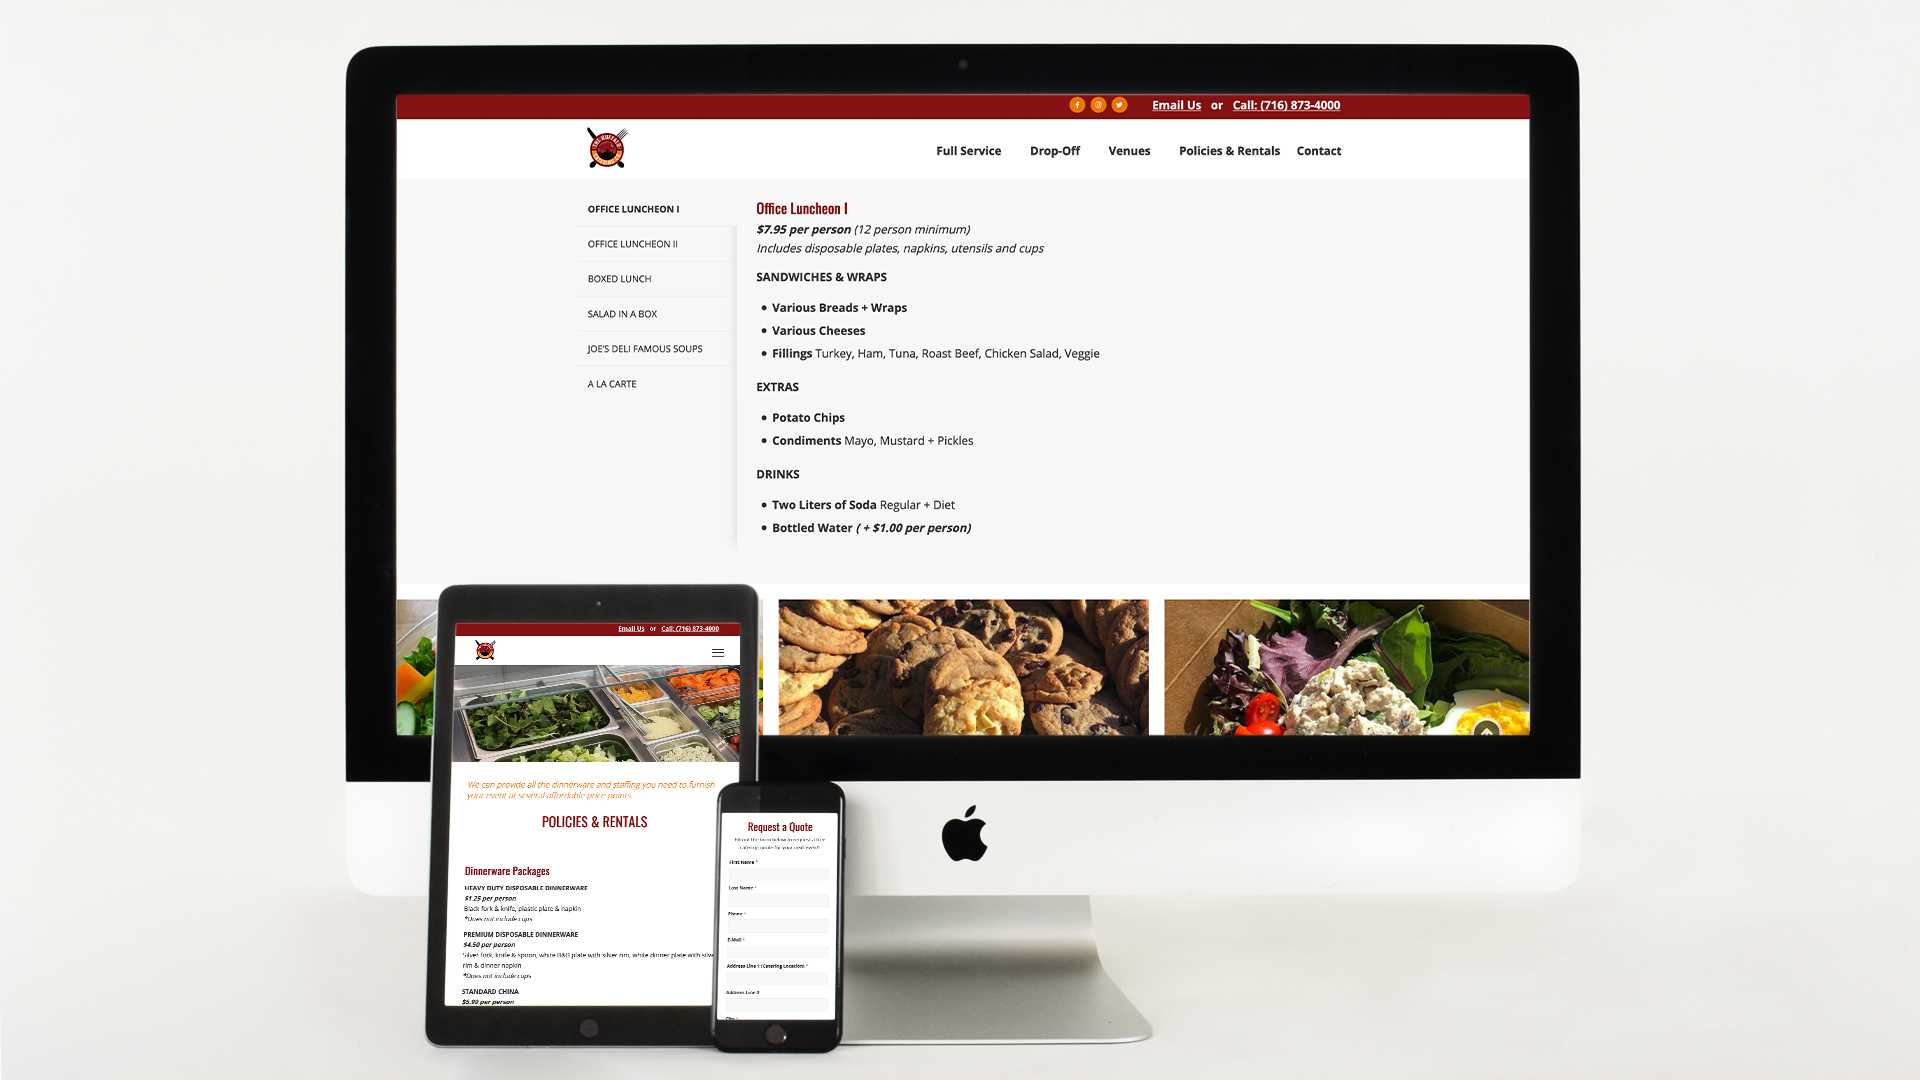 Website Design, Search engine optimization, Mobile Responsive, Catering, Graphic Design